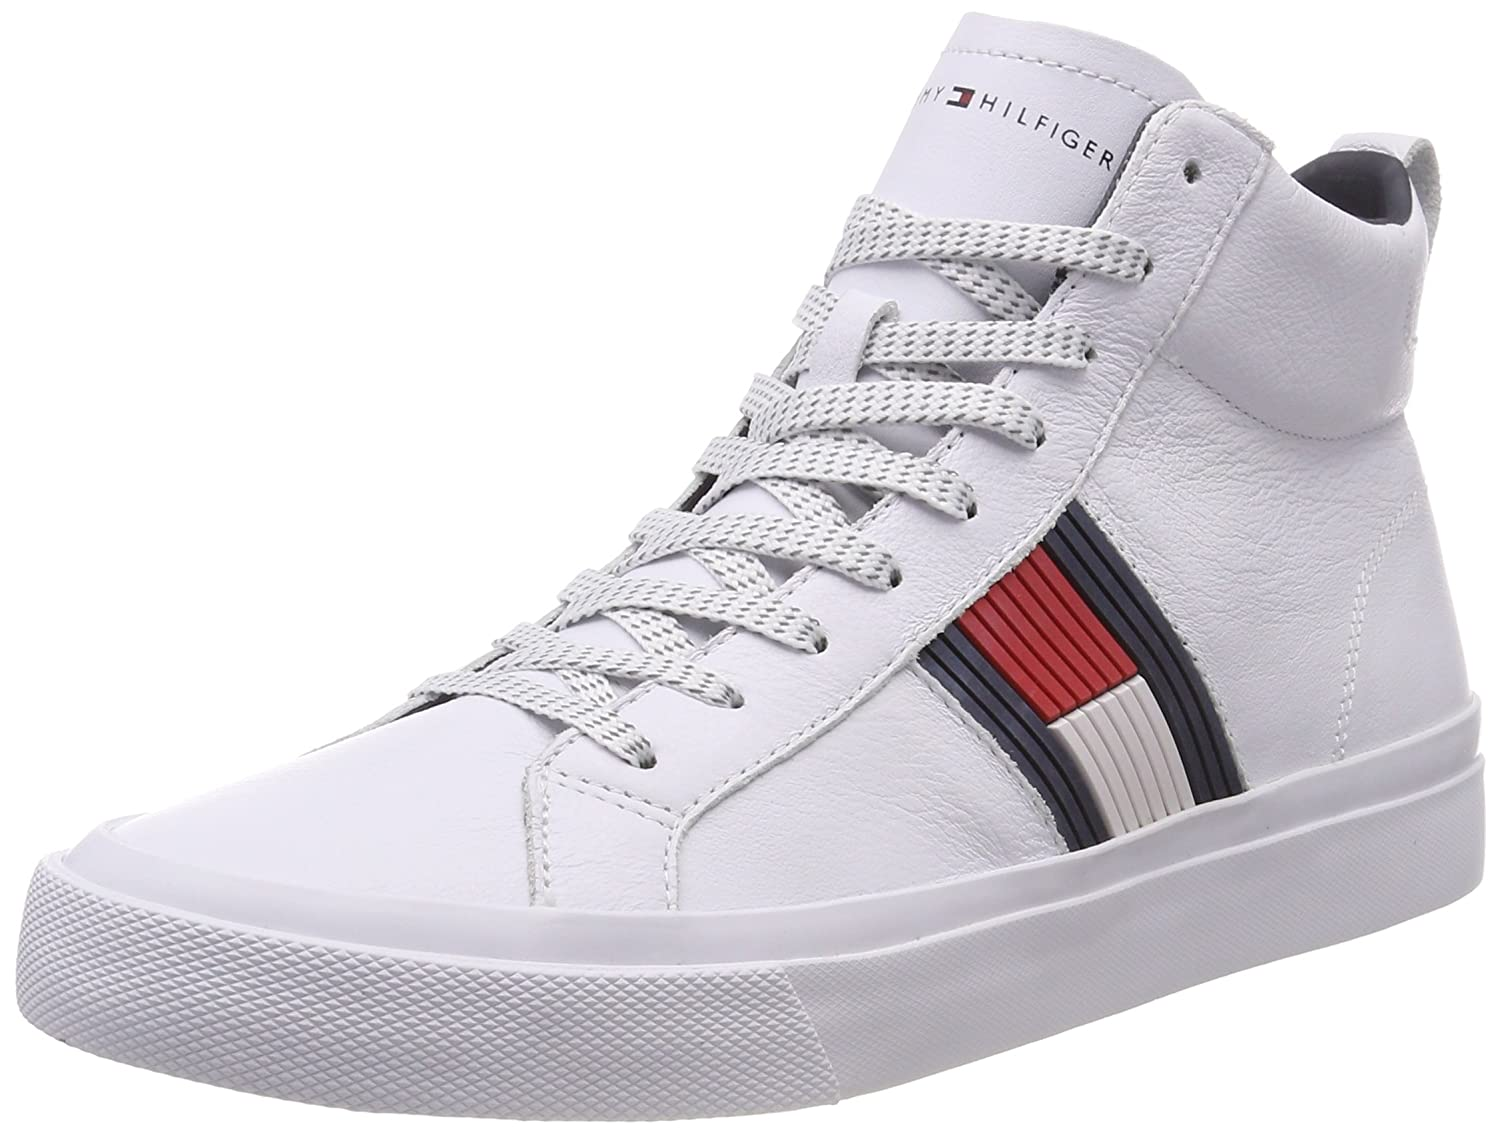 adf853b610e7 Tommy Hilfiger Men s Flag Detail High Leather Sneaker Hi-Top Trainers   Amazon.co.uk  Shoes   Bags